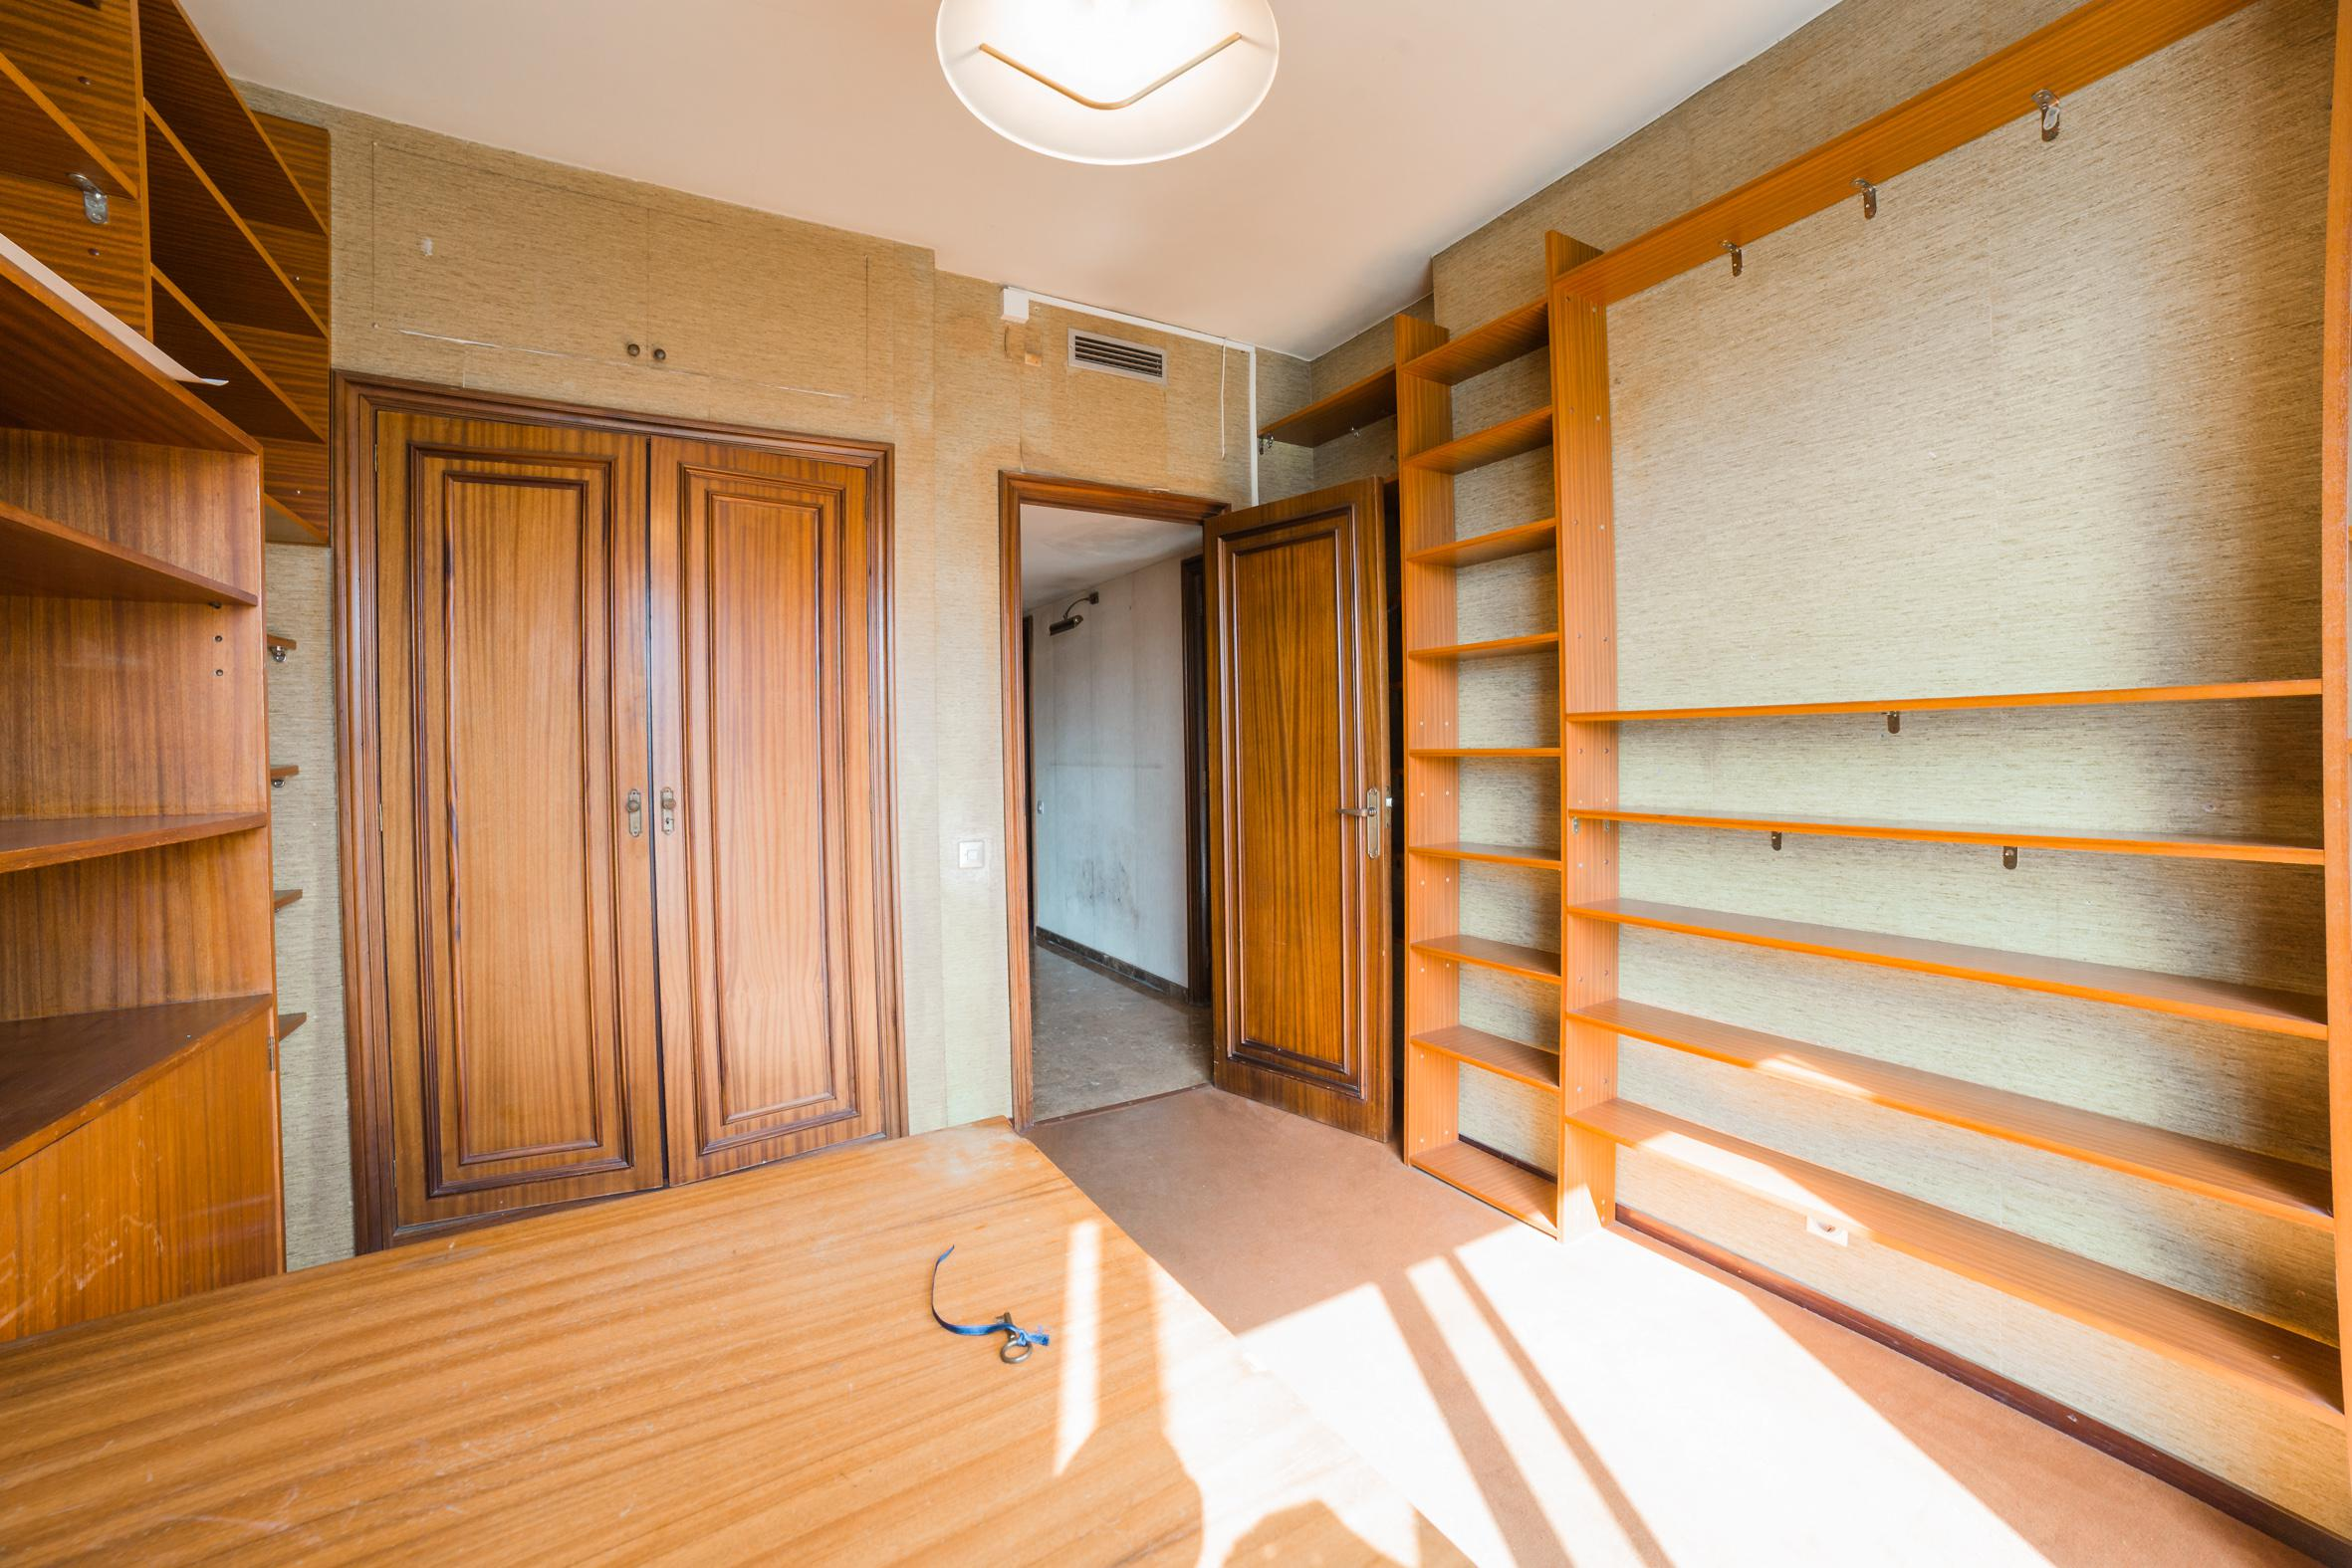 248988 Flat for sale in Les Corts, Les Corts 20